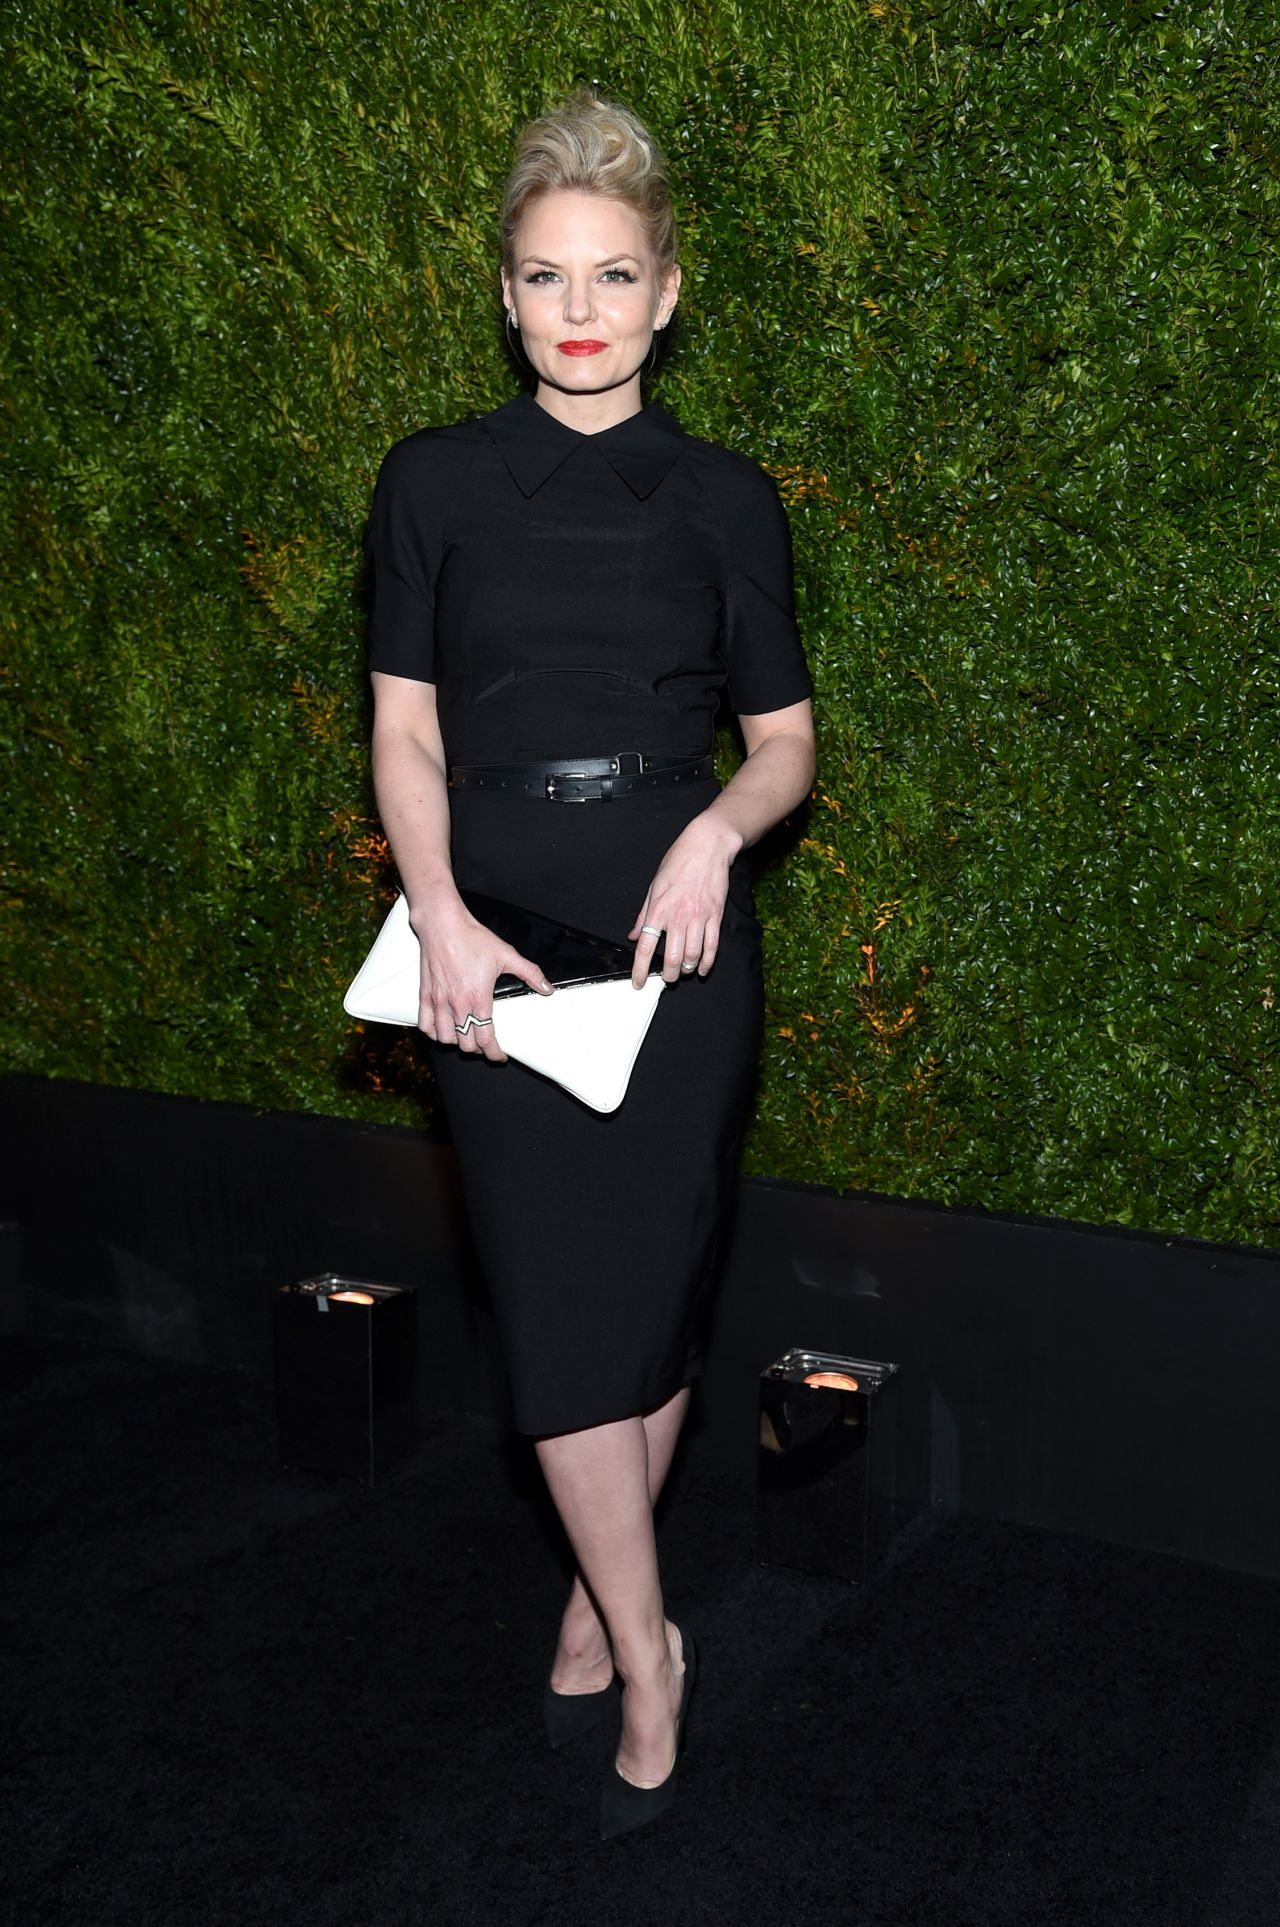 Jennifer Morrison - Chanel Dinner at 2015 Tribeca Film Festival in New York City